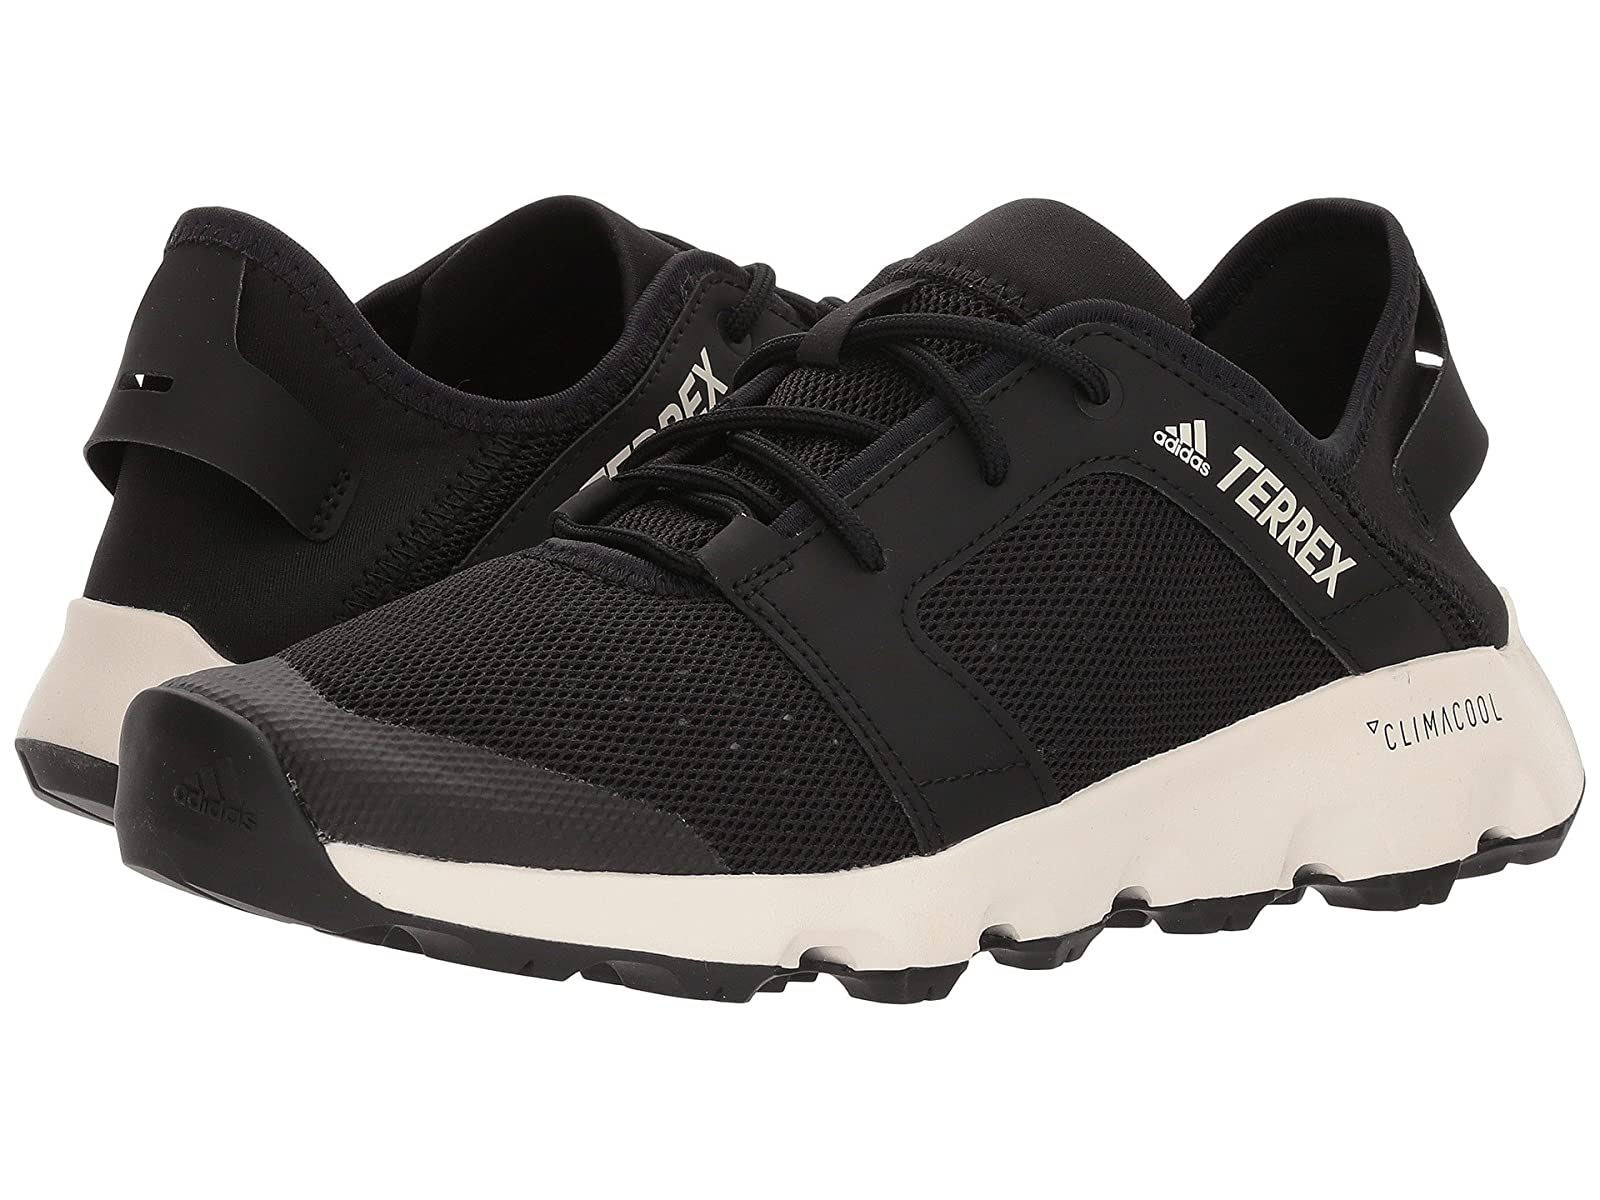 adidas Outdoor Terrex CC Voyager SleekAtmospheric grades have affordable shoes